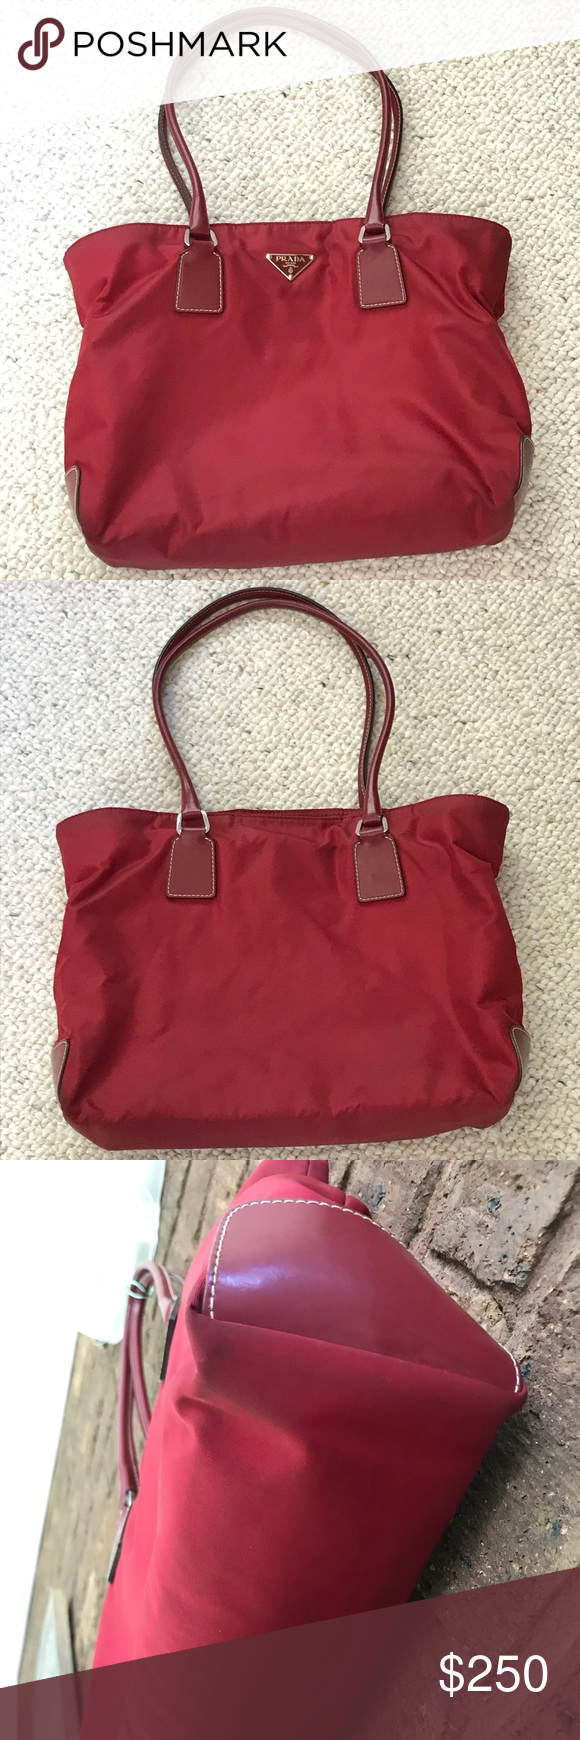 9bc61eb89f9e0c Prada rare vintage small tote in red nylon Gorgeous pre-loved red shoulder  bag from Prada with leather handles and patches on the bottom sides.